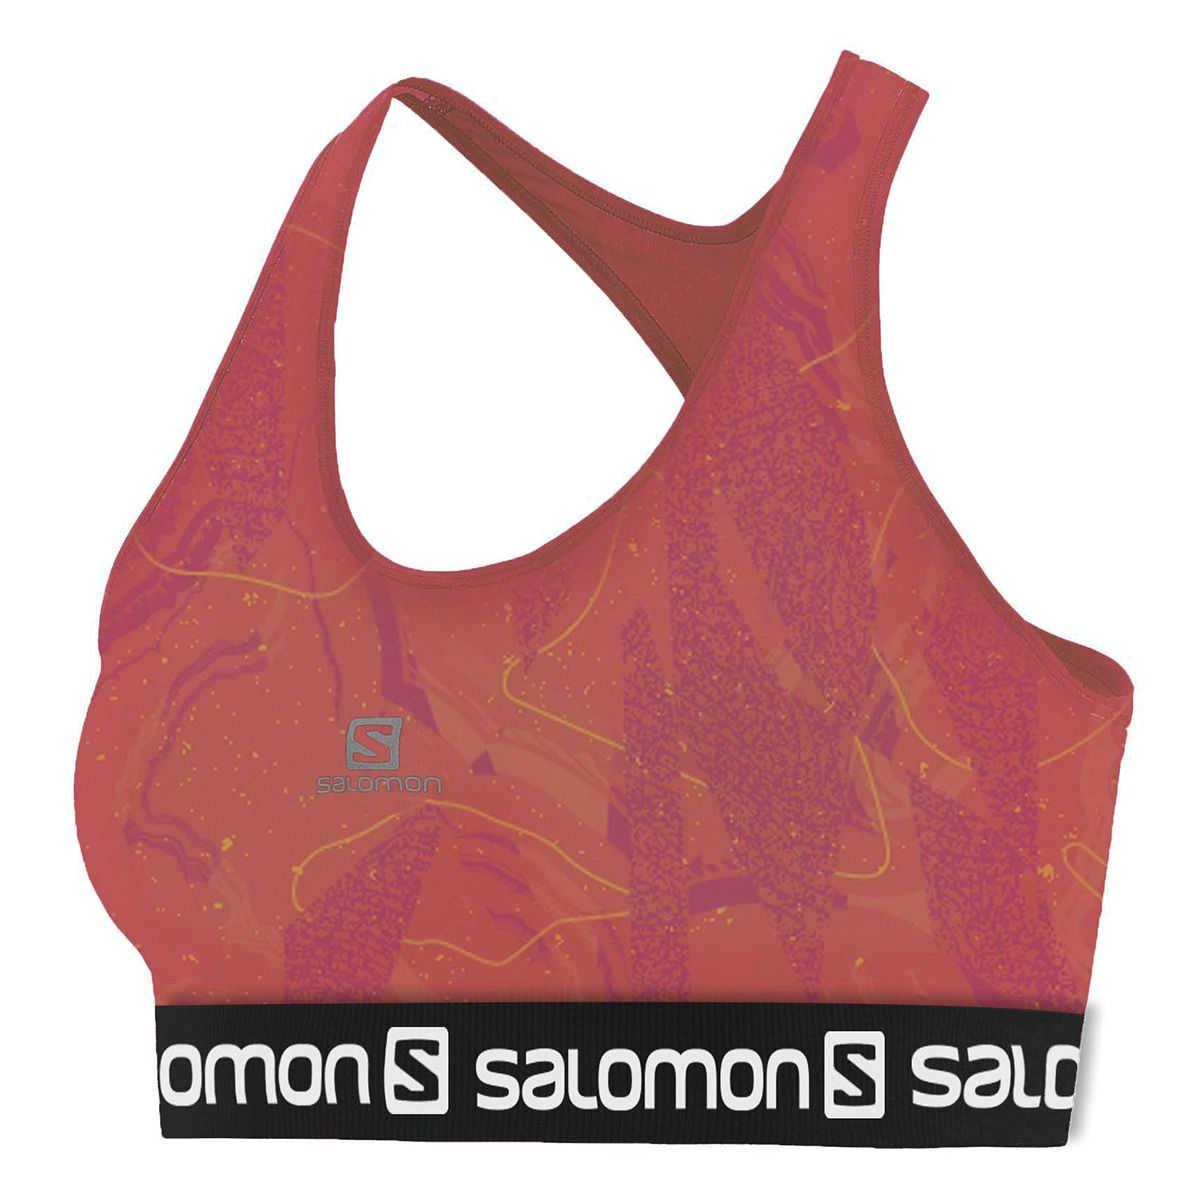 Top Impact Graphic Bra II Salomon